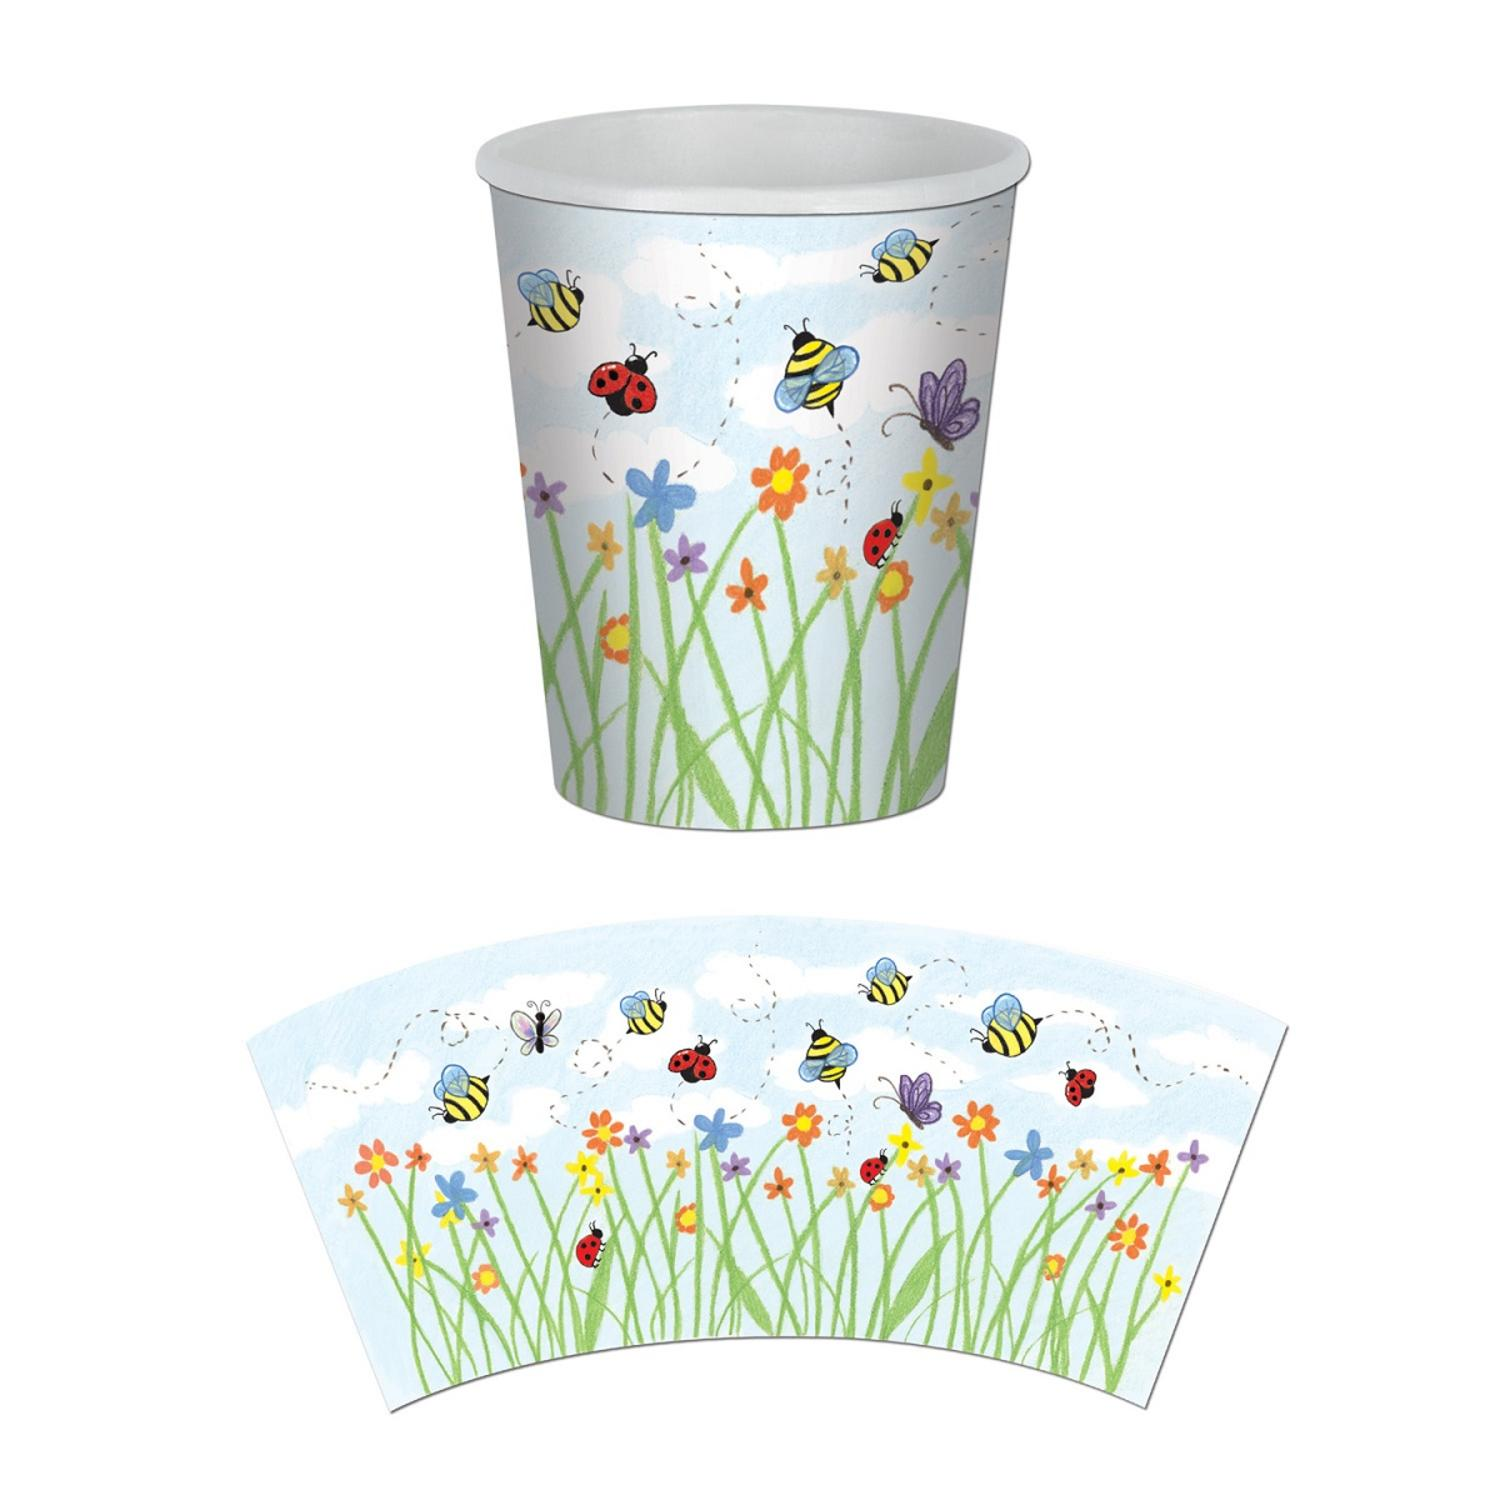 Club Pack of 96 Hot and Cold Disposable Garden Beverage Cups 9 oz.